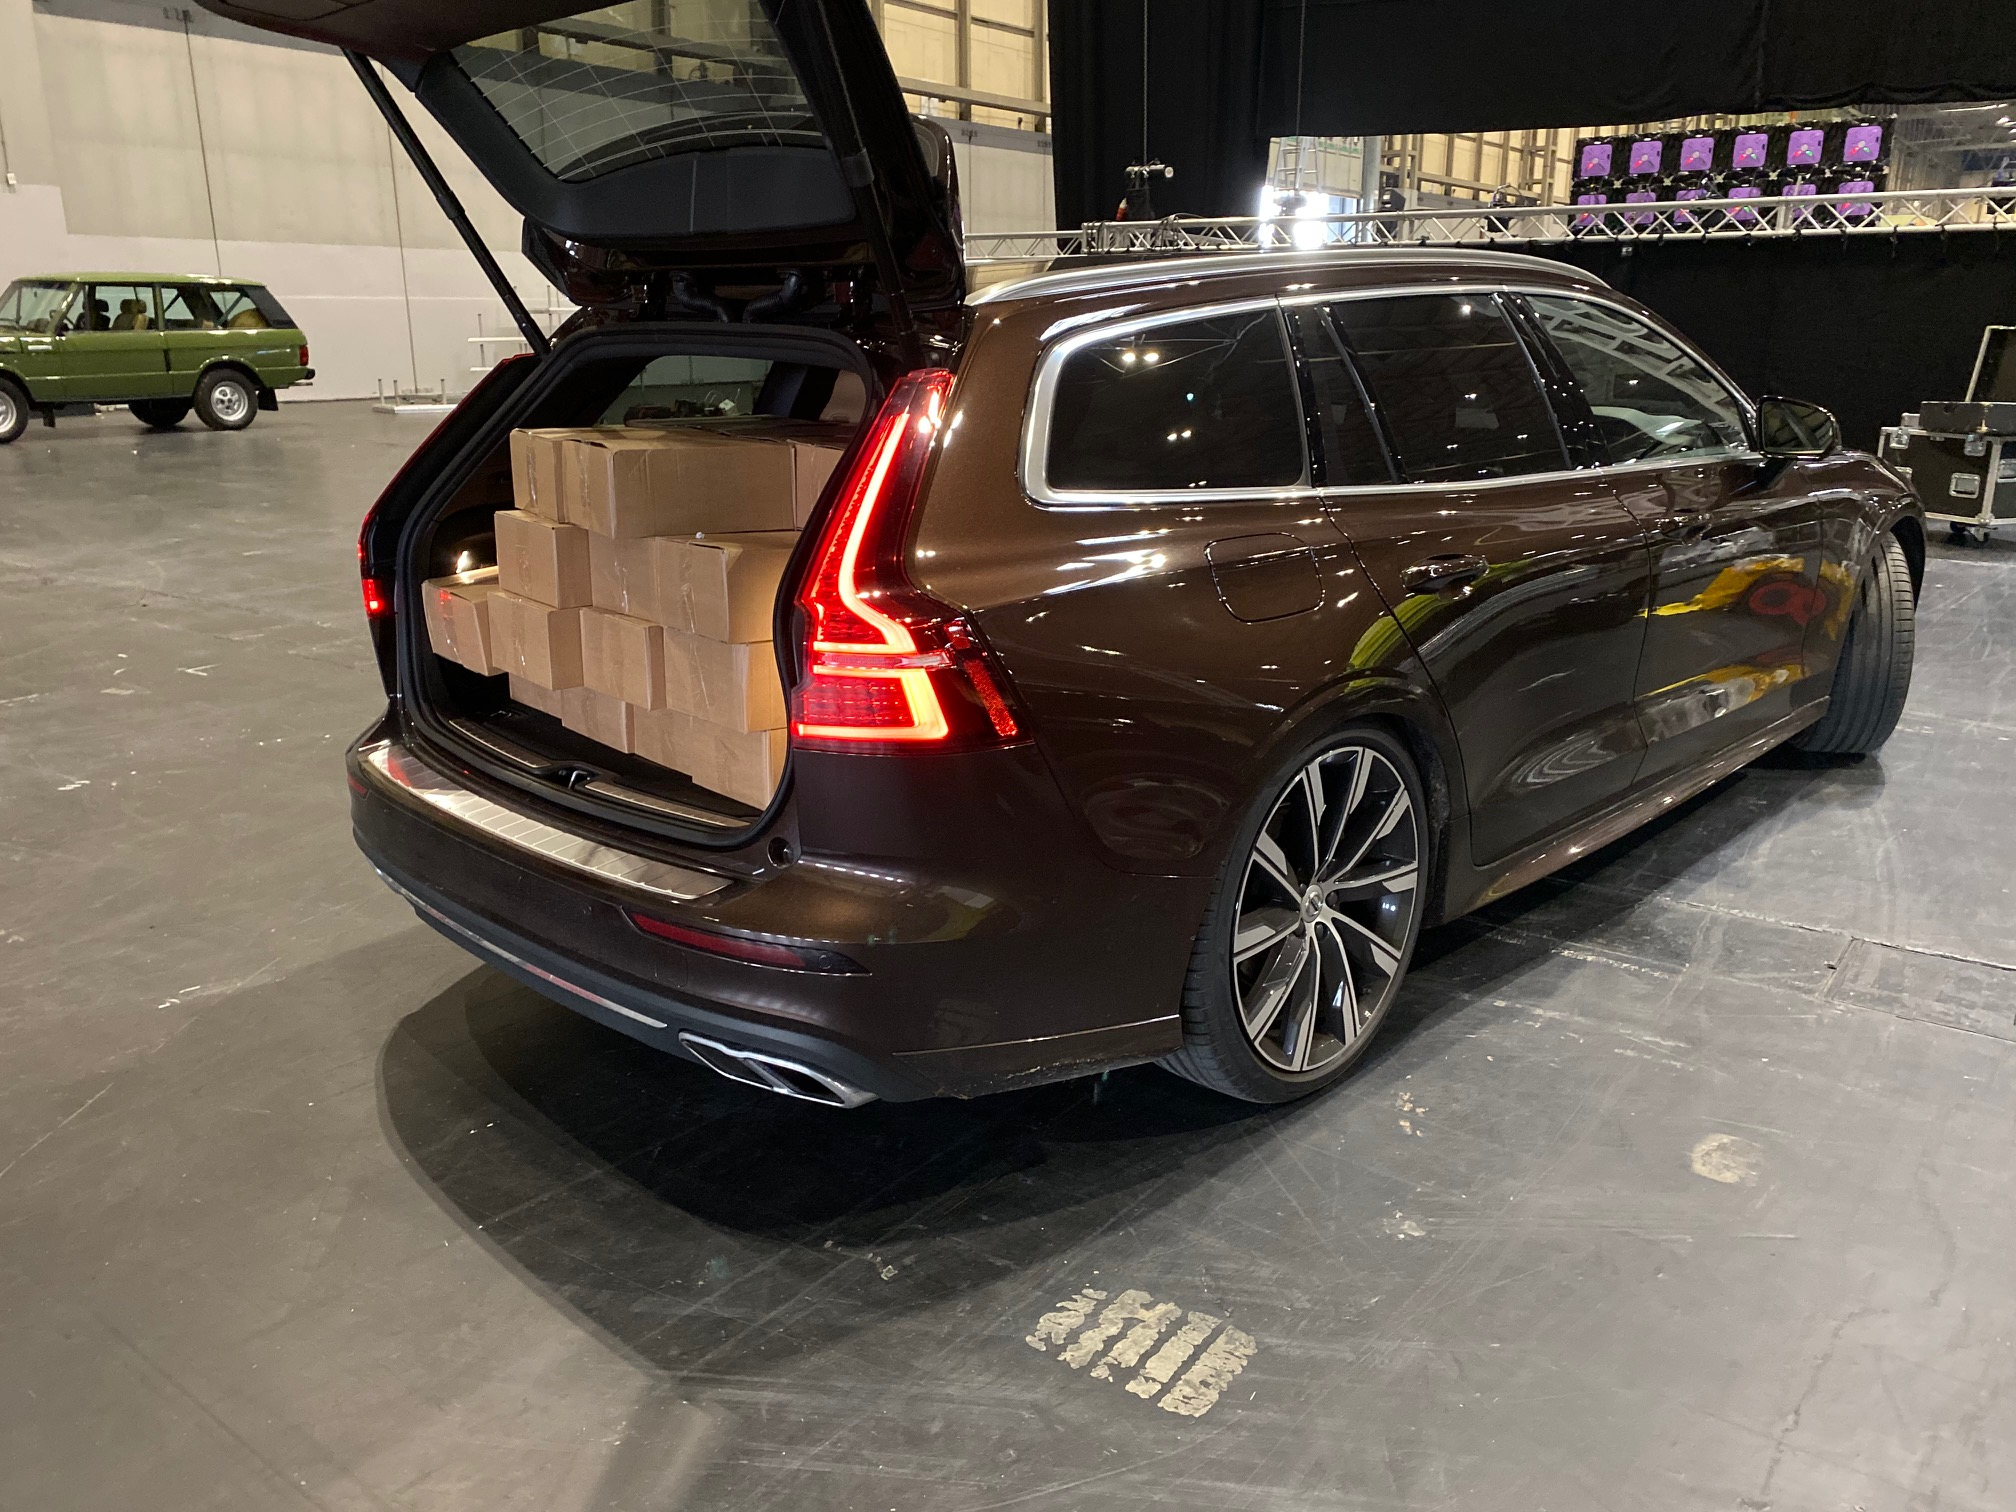 The V60's large boot has come in very handy